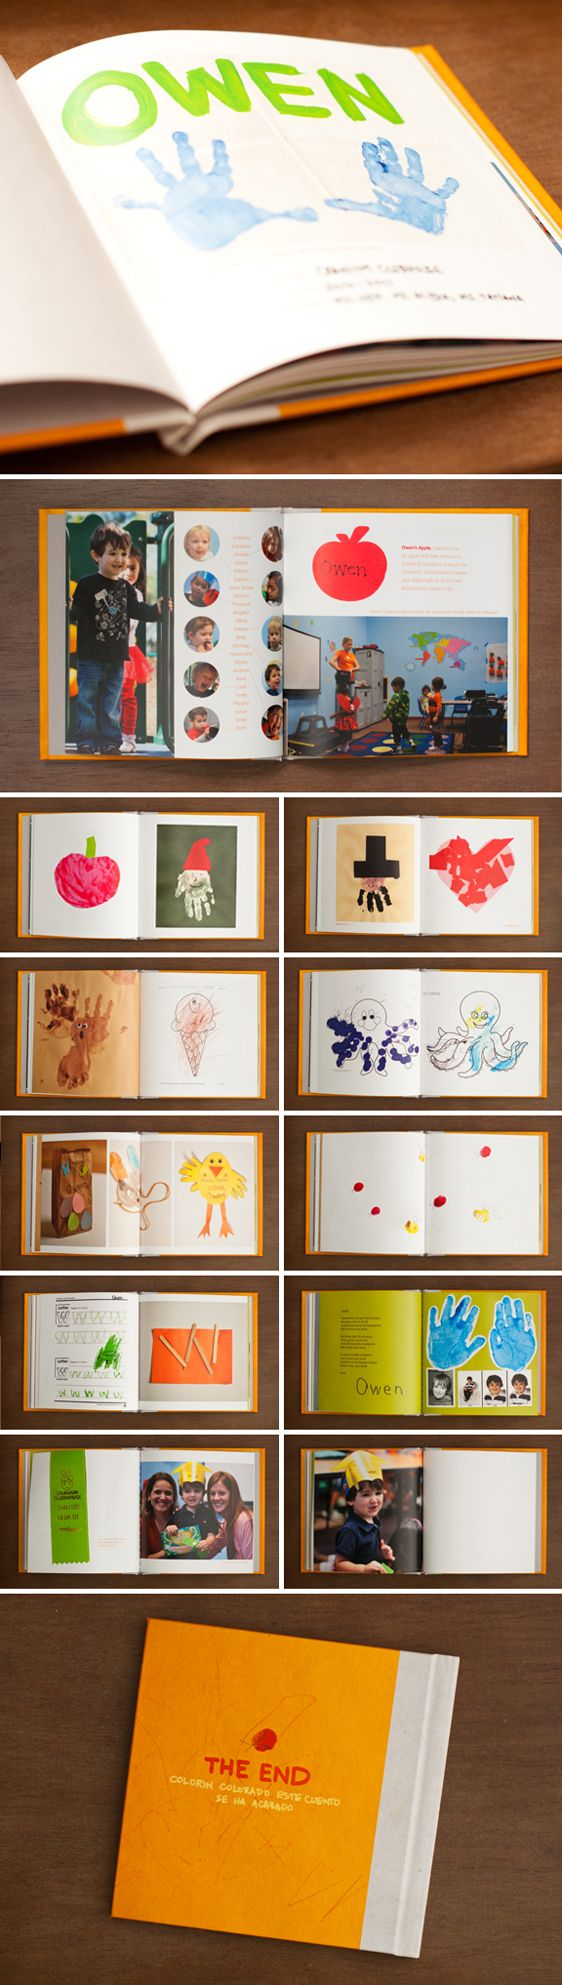 Scan or take photos of art work and writings — Book of School Projects. Love love love this idea